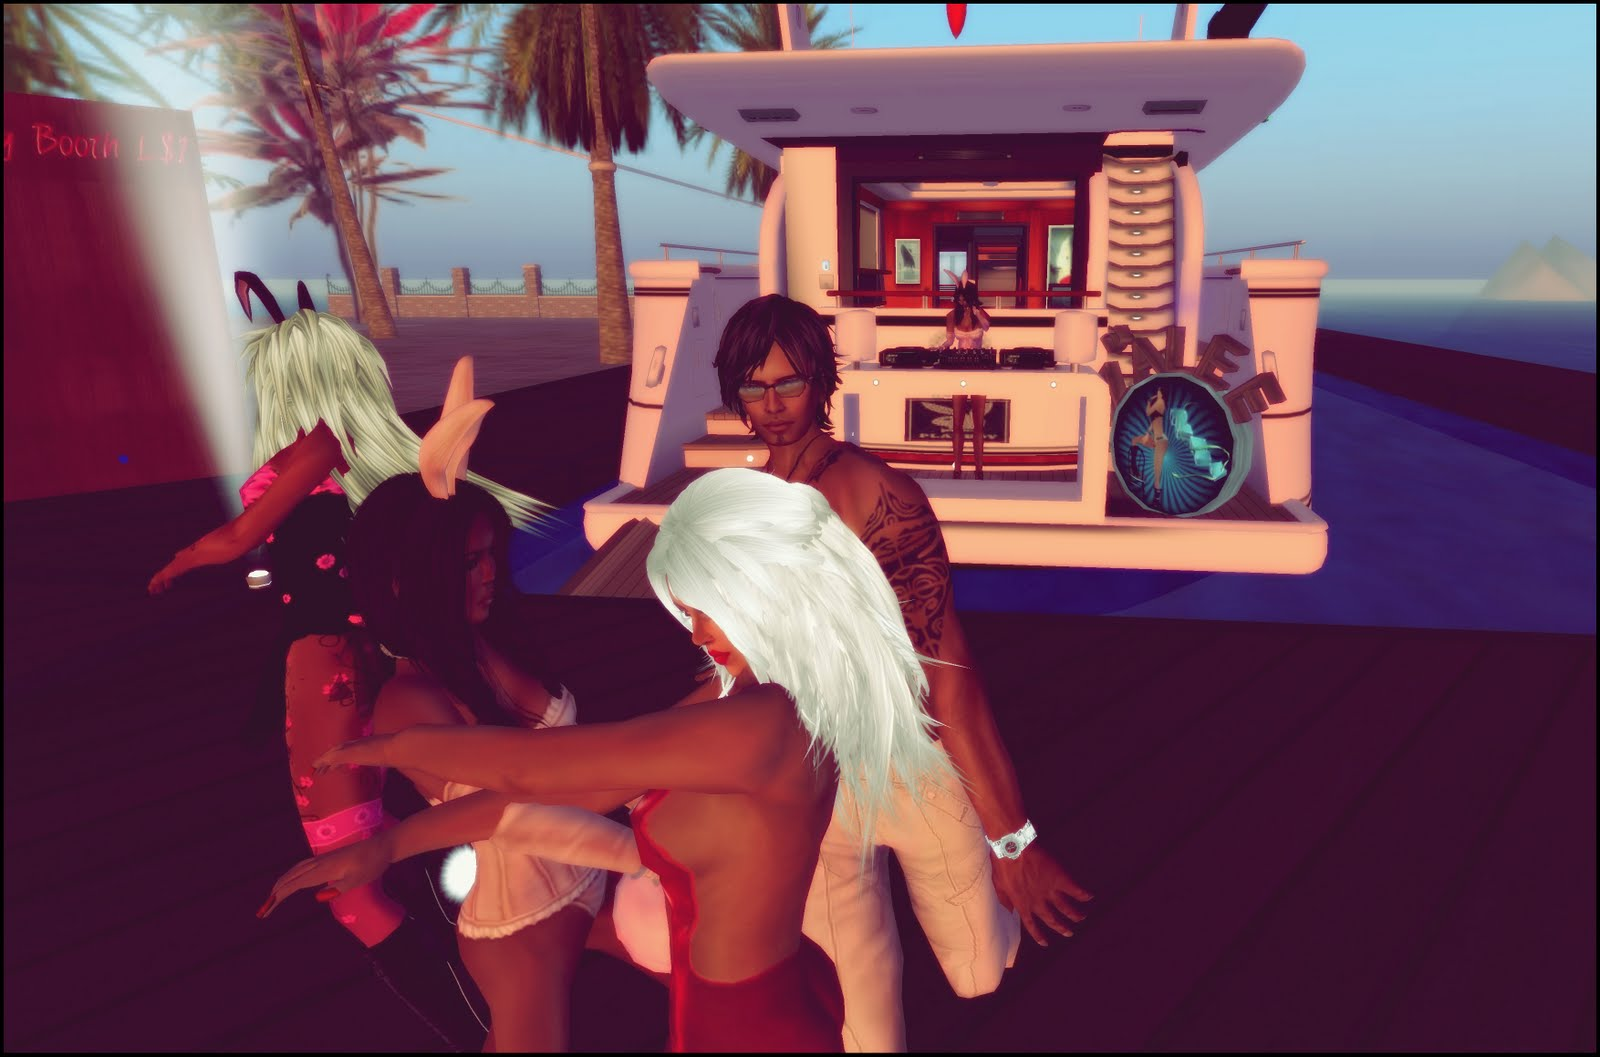 American Playboy The Hugh Hefner Story Wiki second life playboy mansion location men's sites online